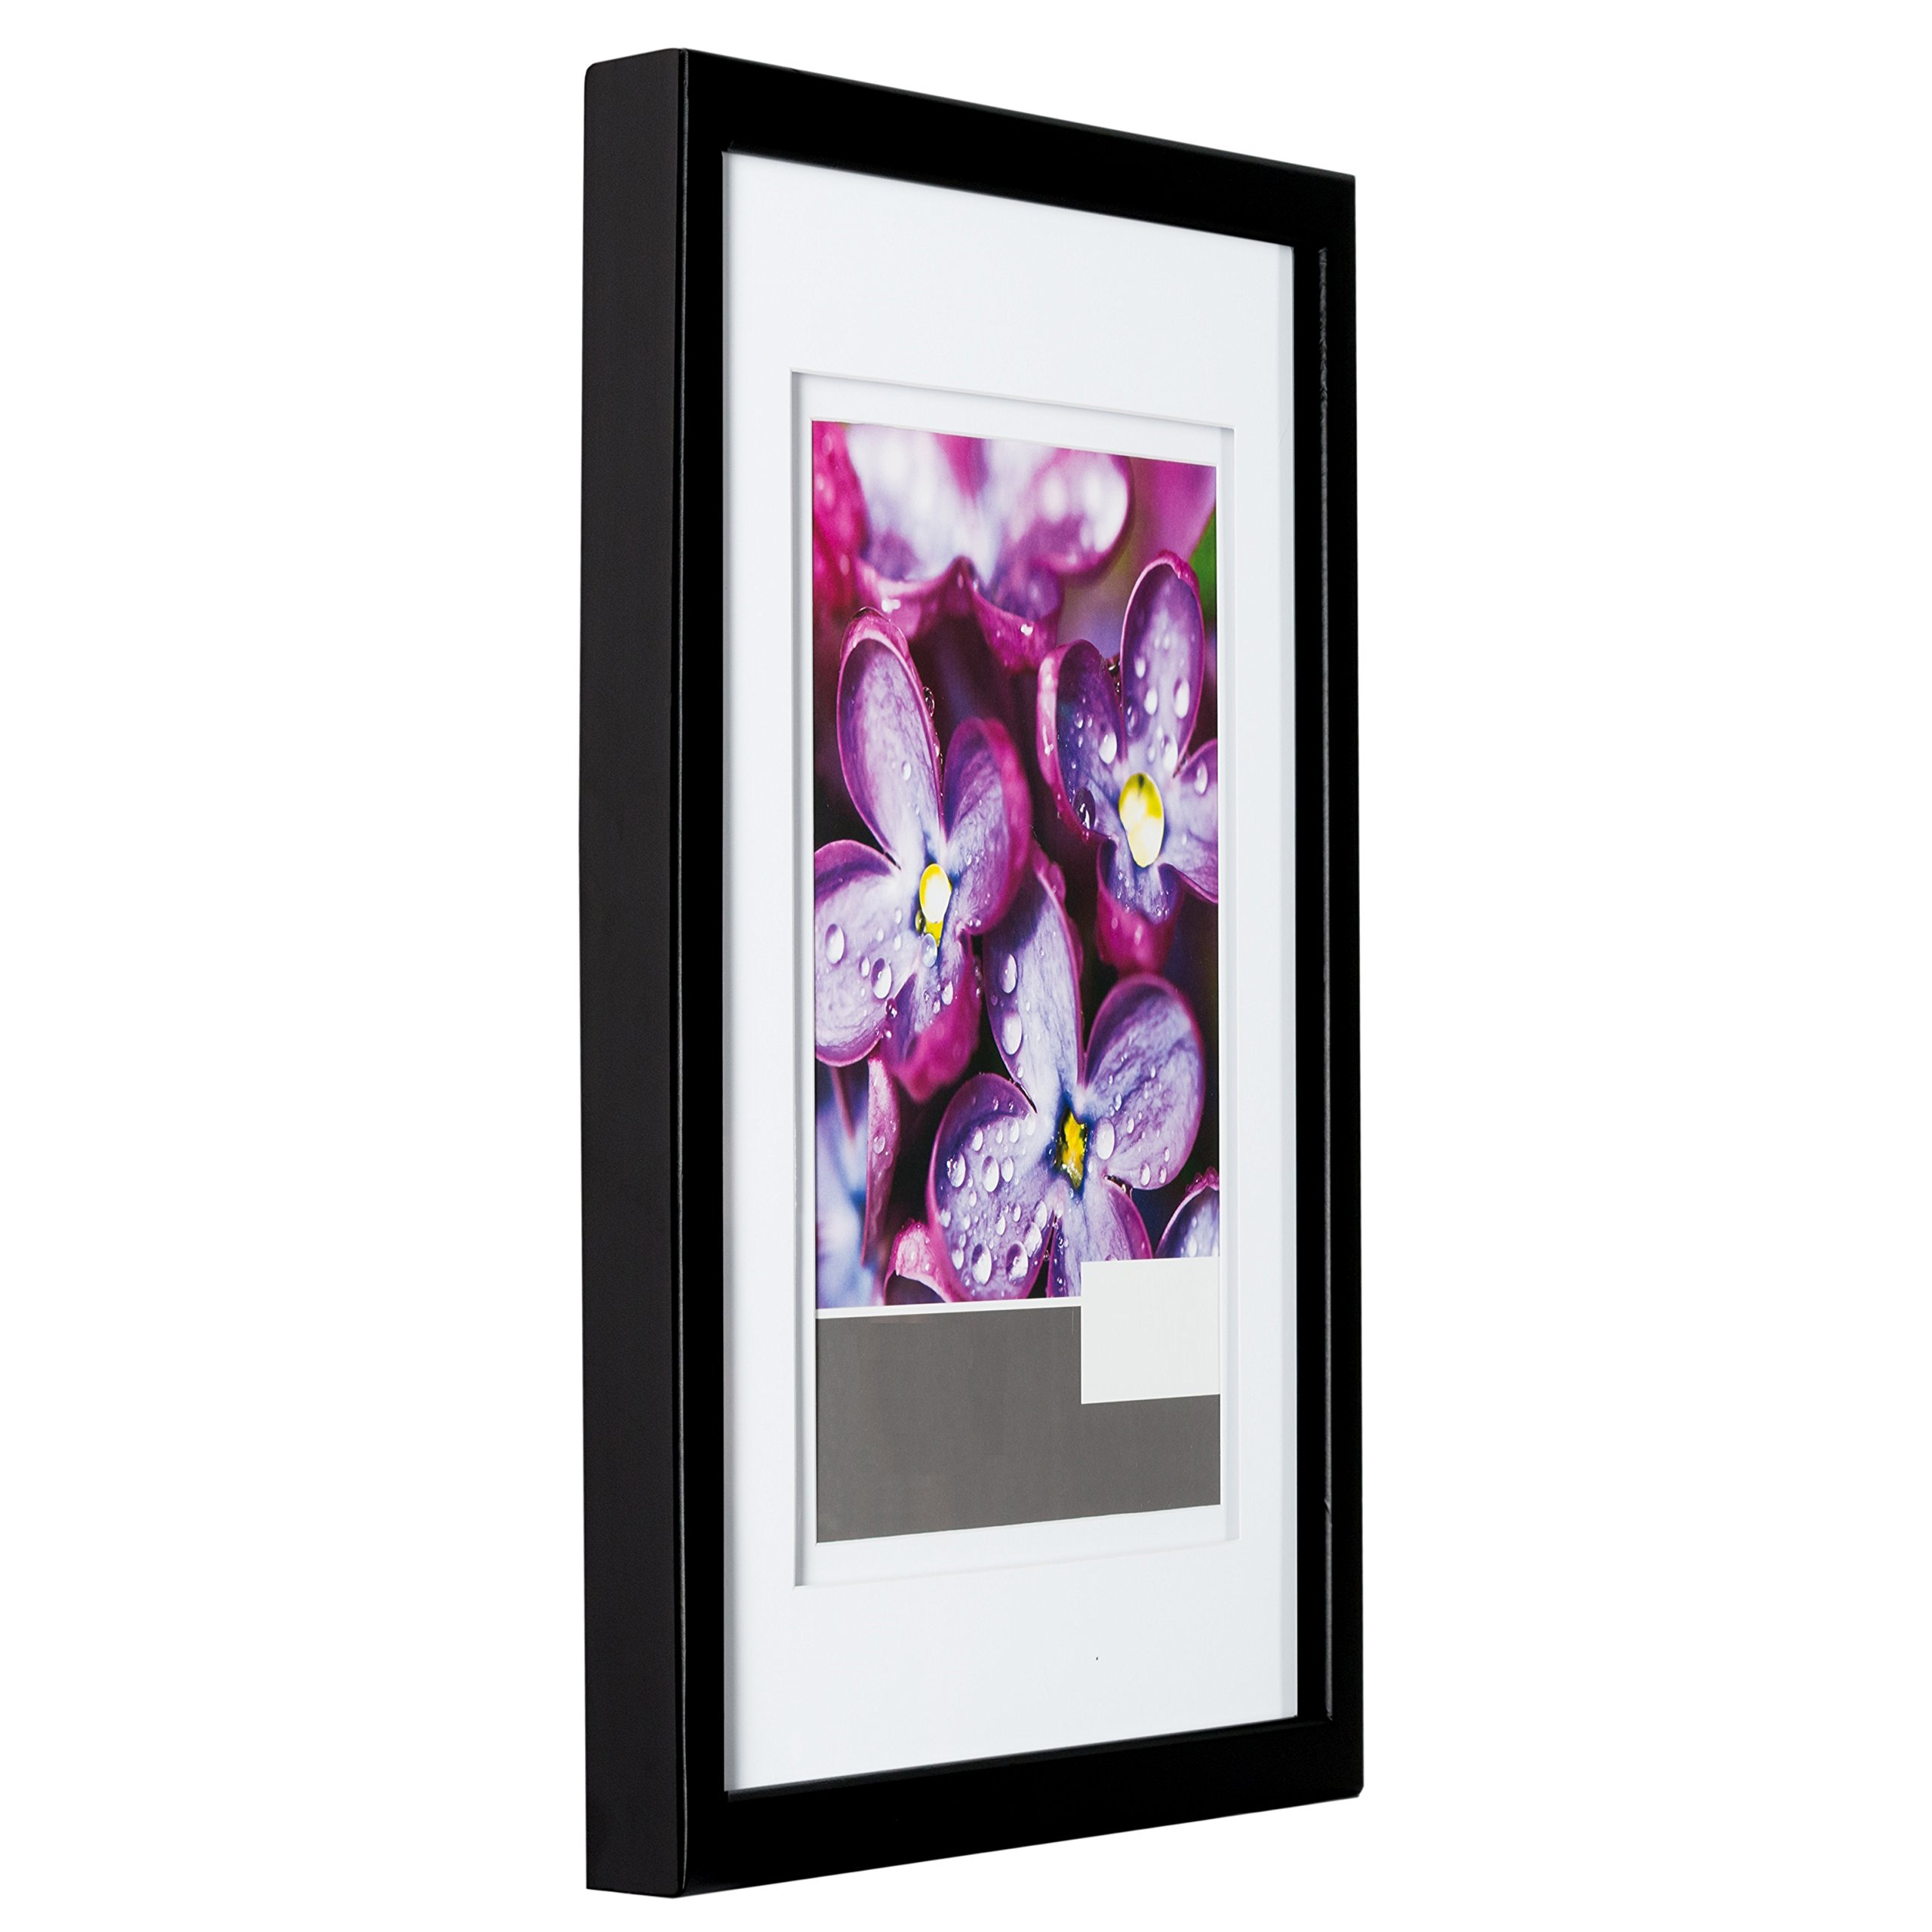 Gallery Solutions 14x18 Black Wood Wall Frame With Double